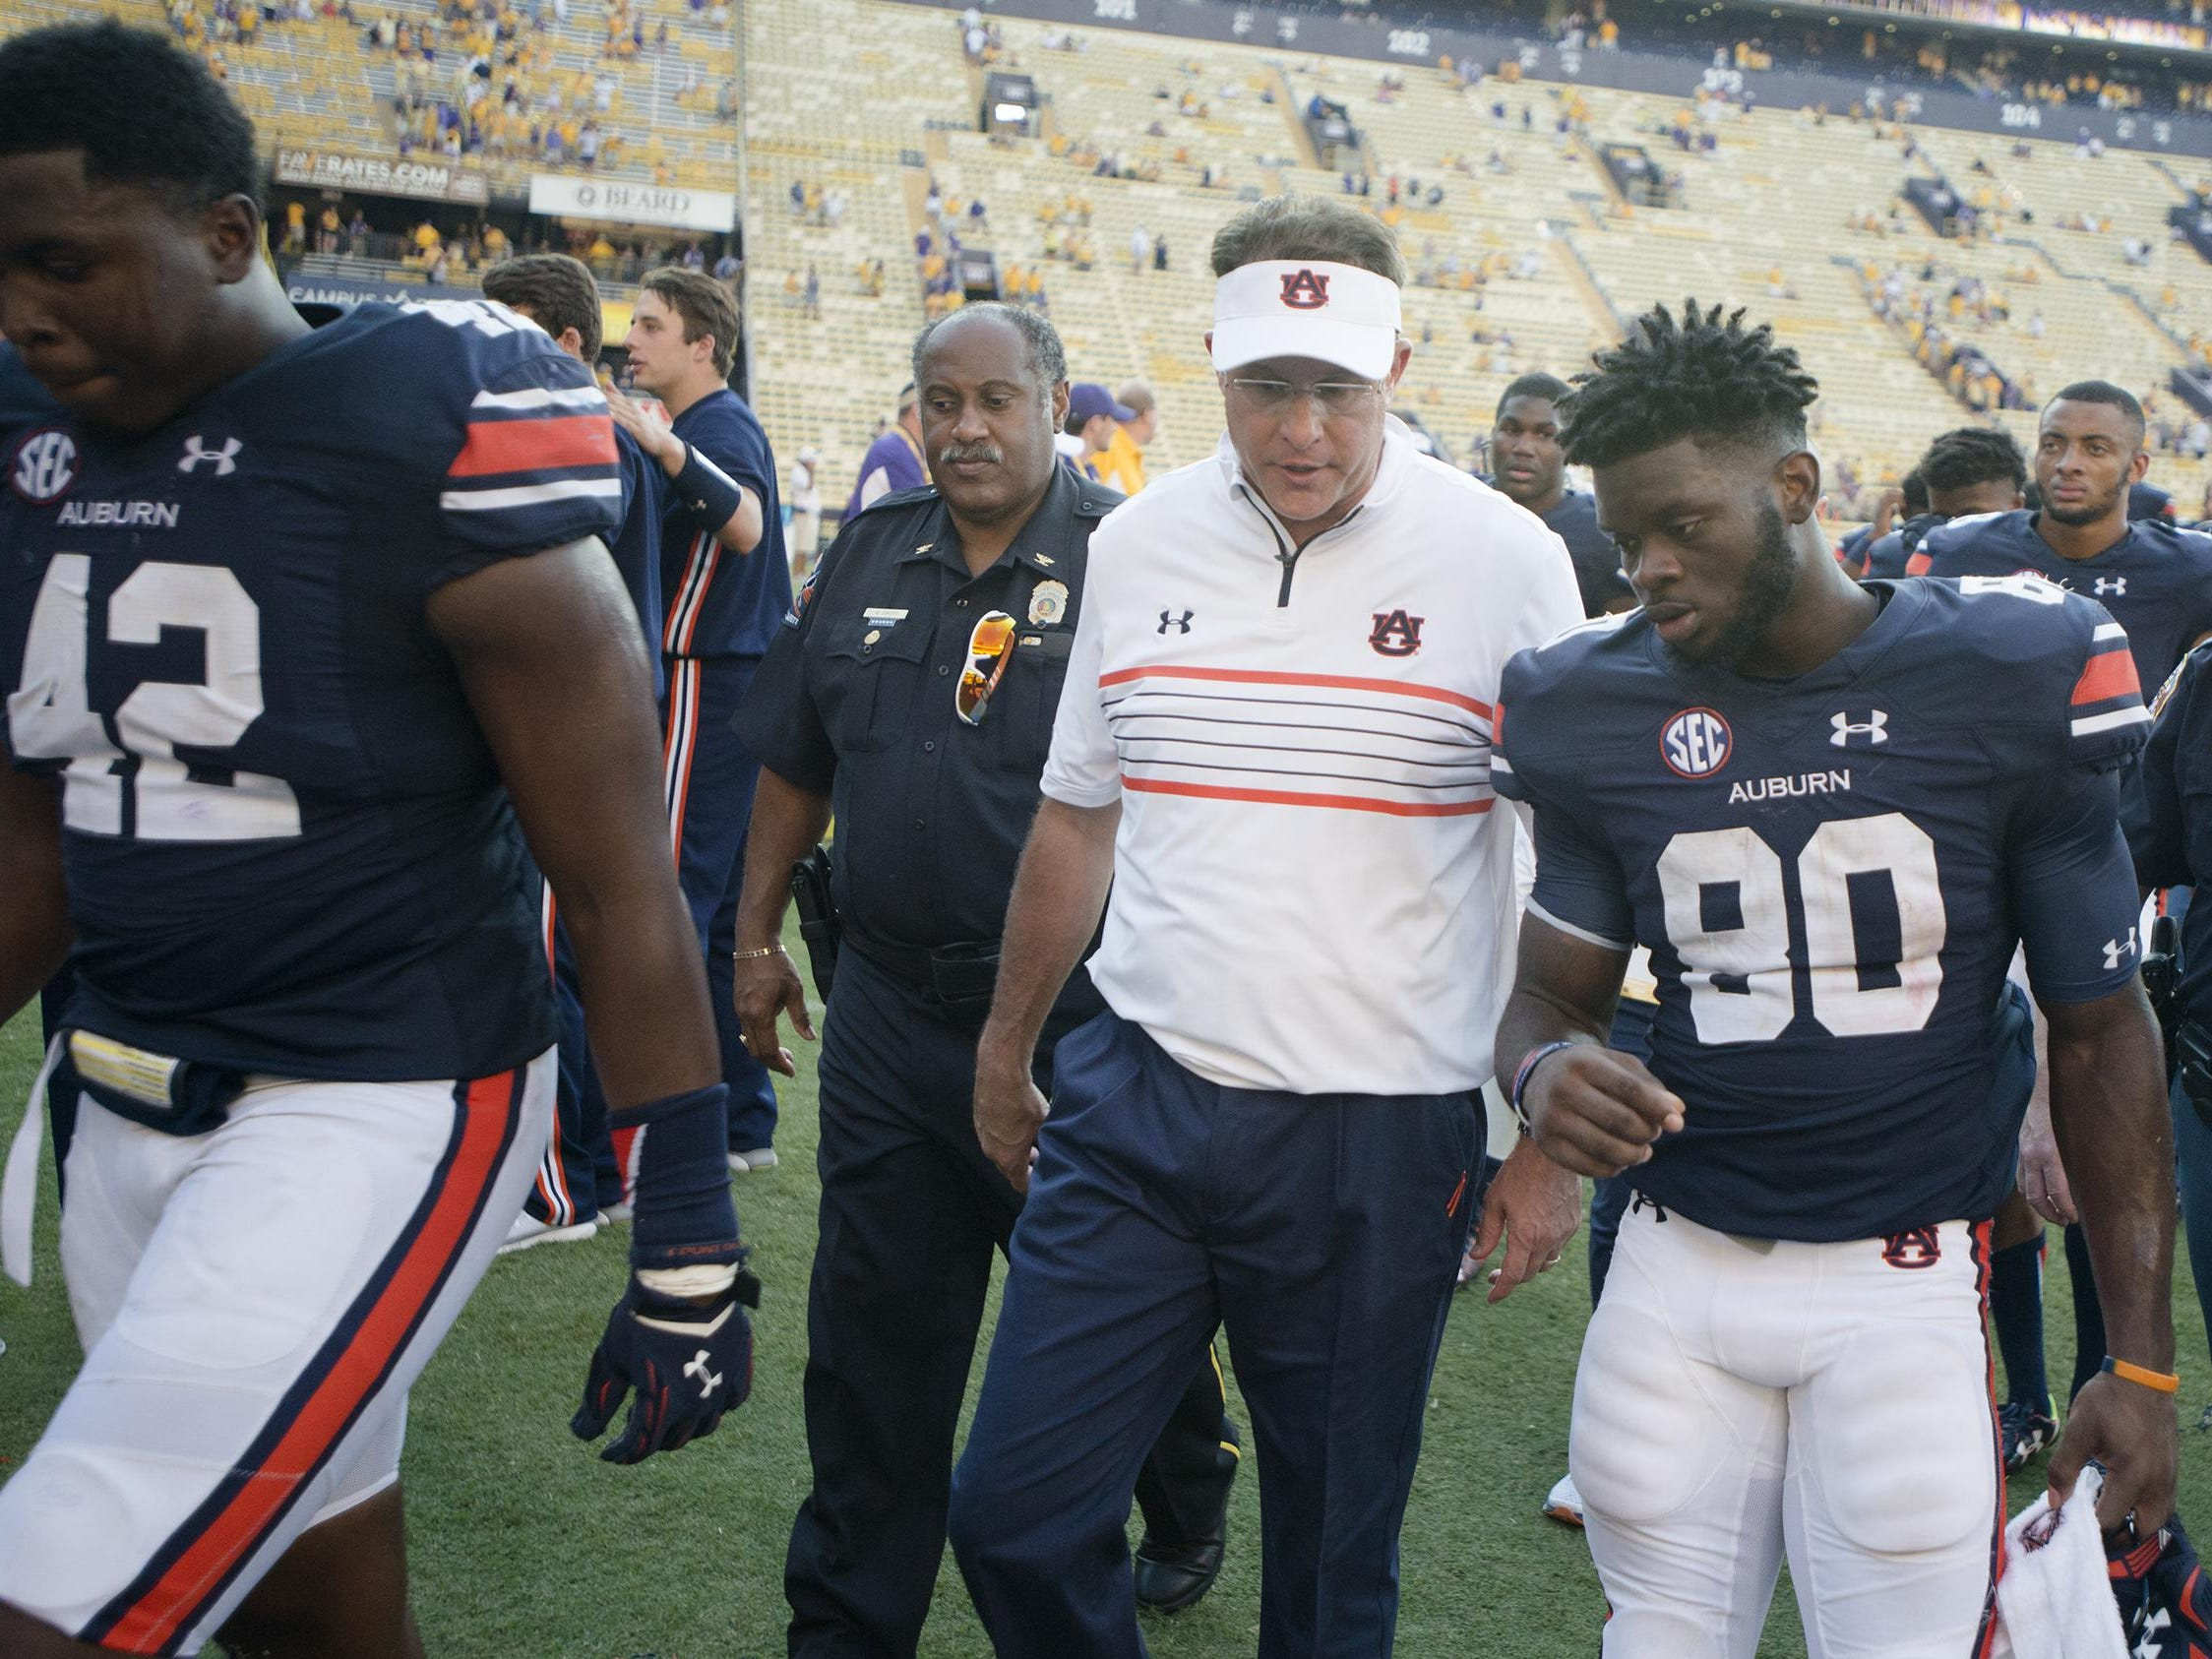 Auburn head coach Gus Malzahn talks to wide receiver Marcus Davis after their 45-21 loss.